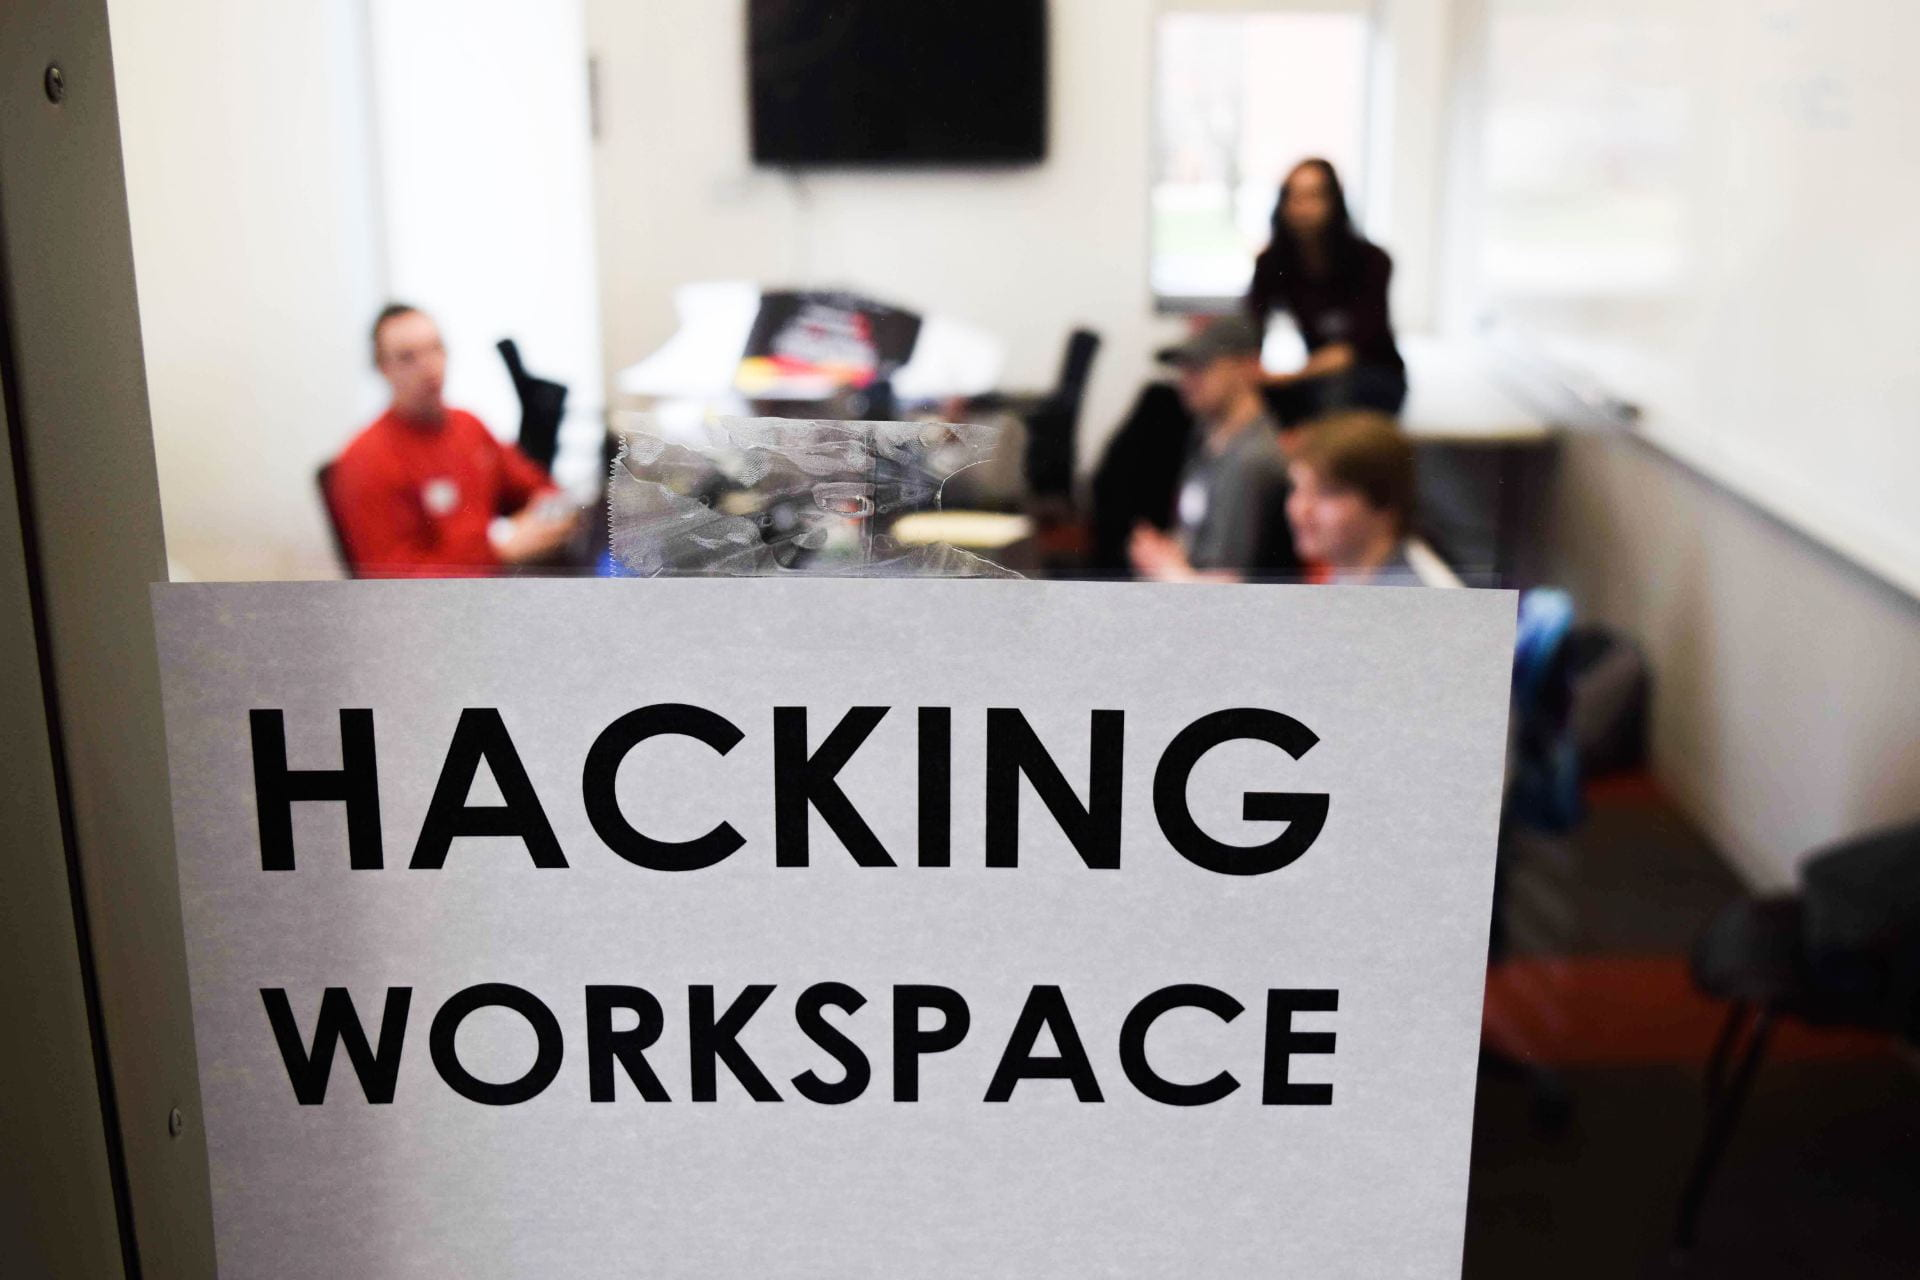 Hacking Workspace sign